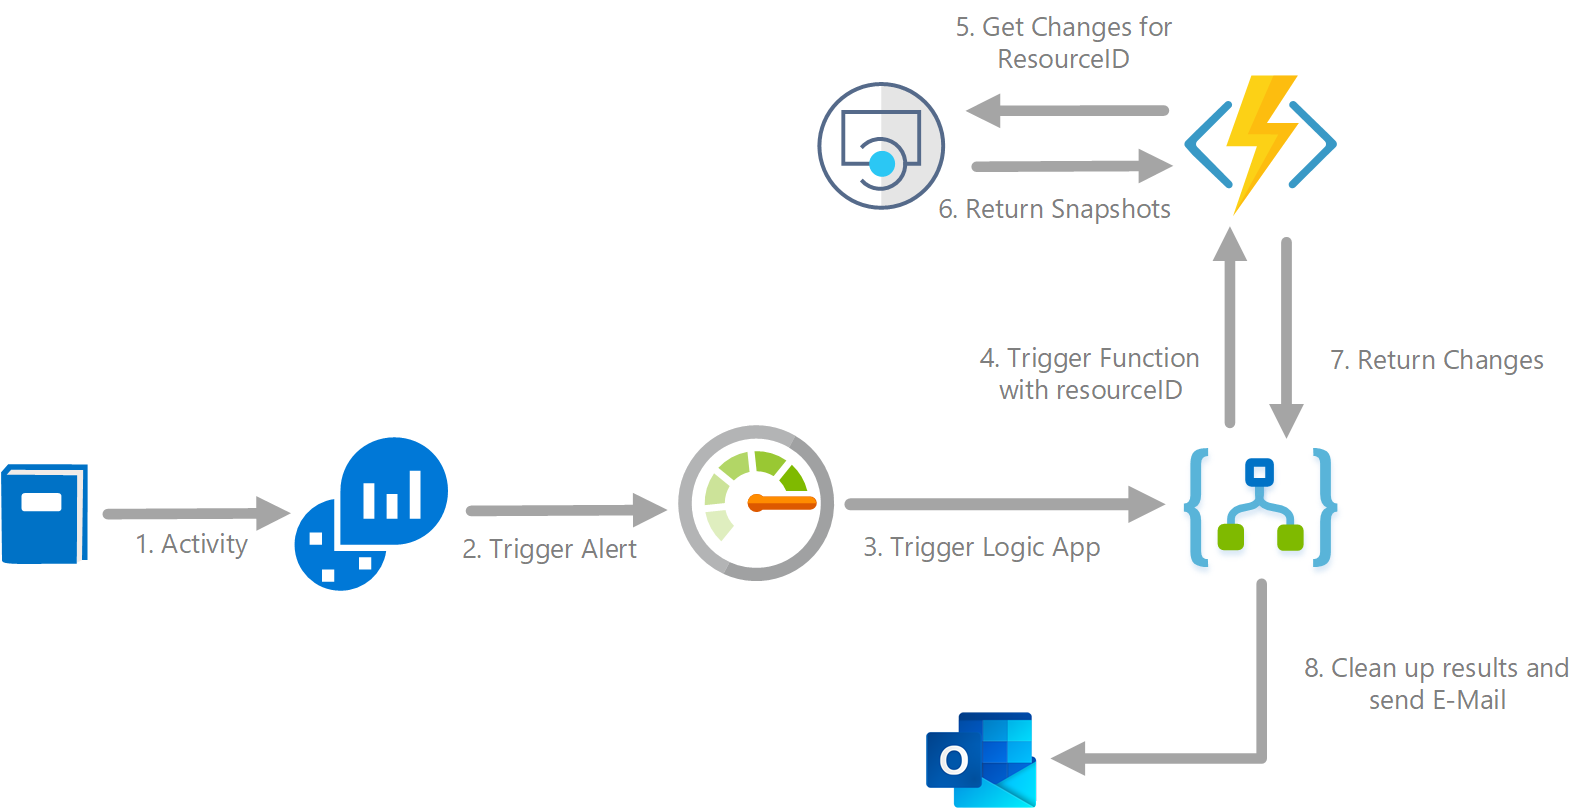 Automating change detection using Resource Graph and Change History